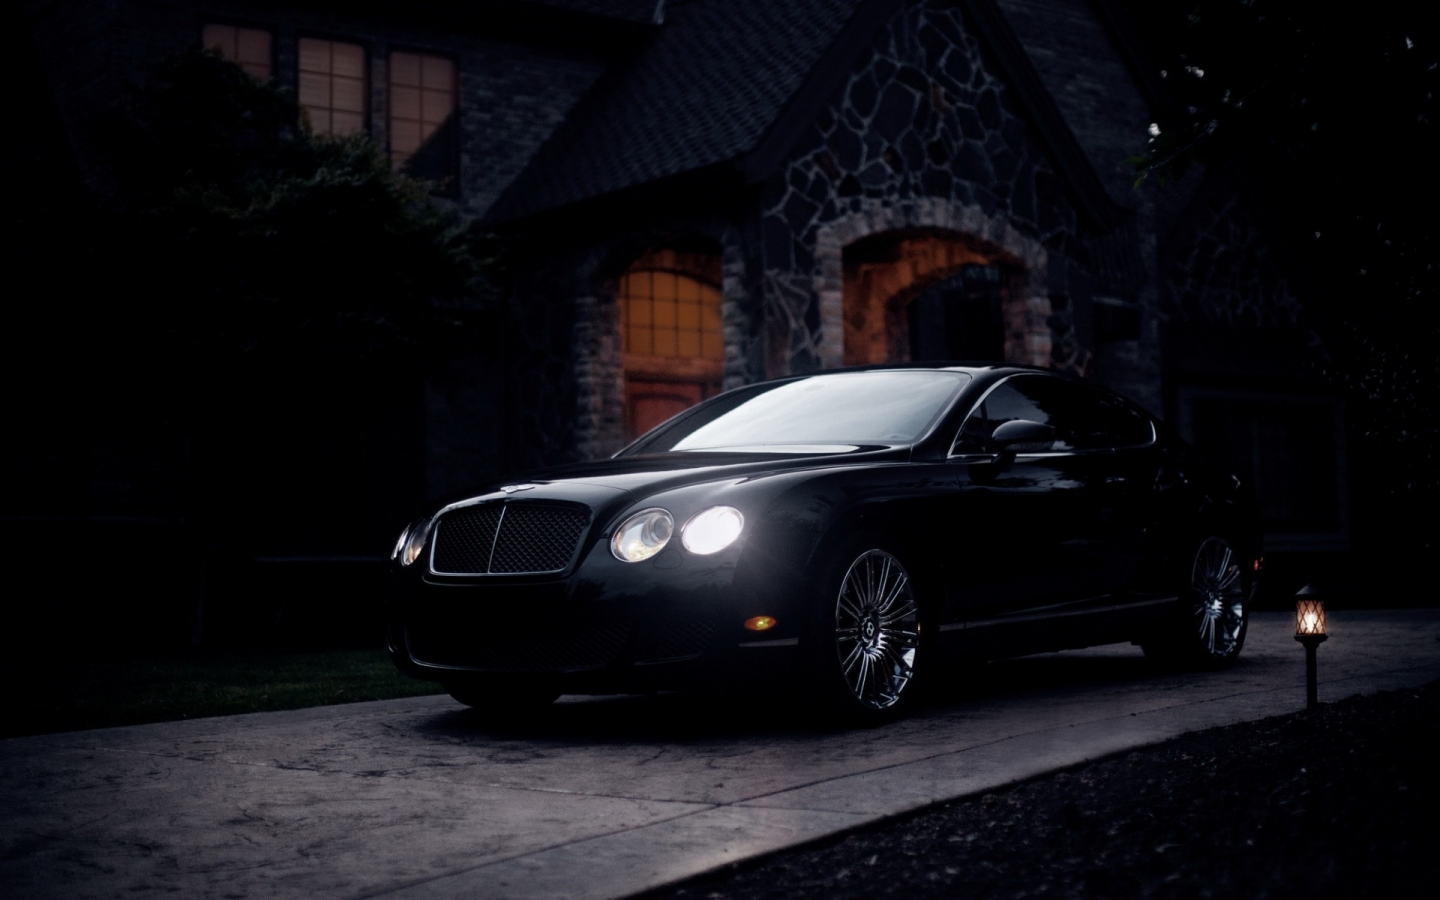 Black Bentley Continental GT for 1440 x 900 widescreen resolution